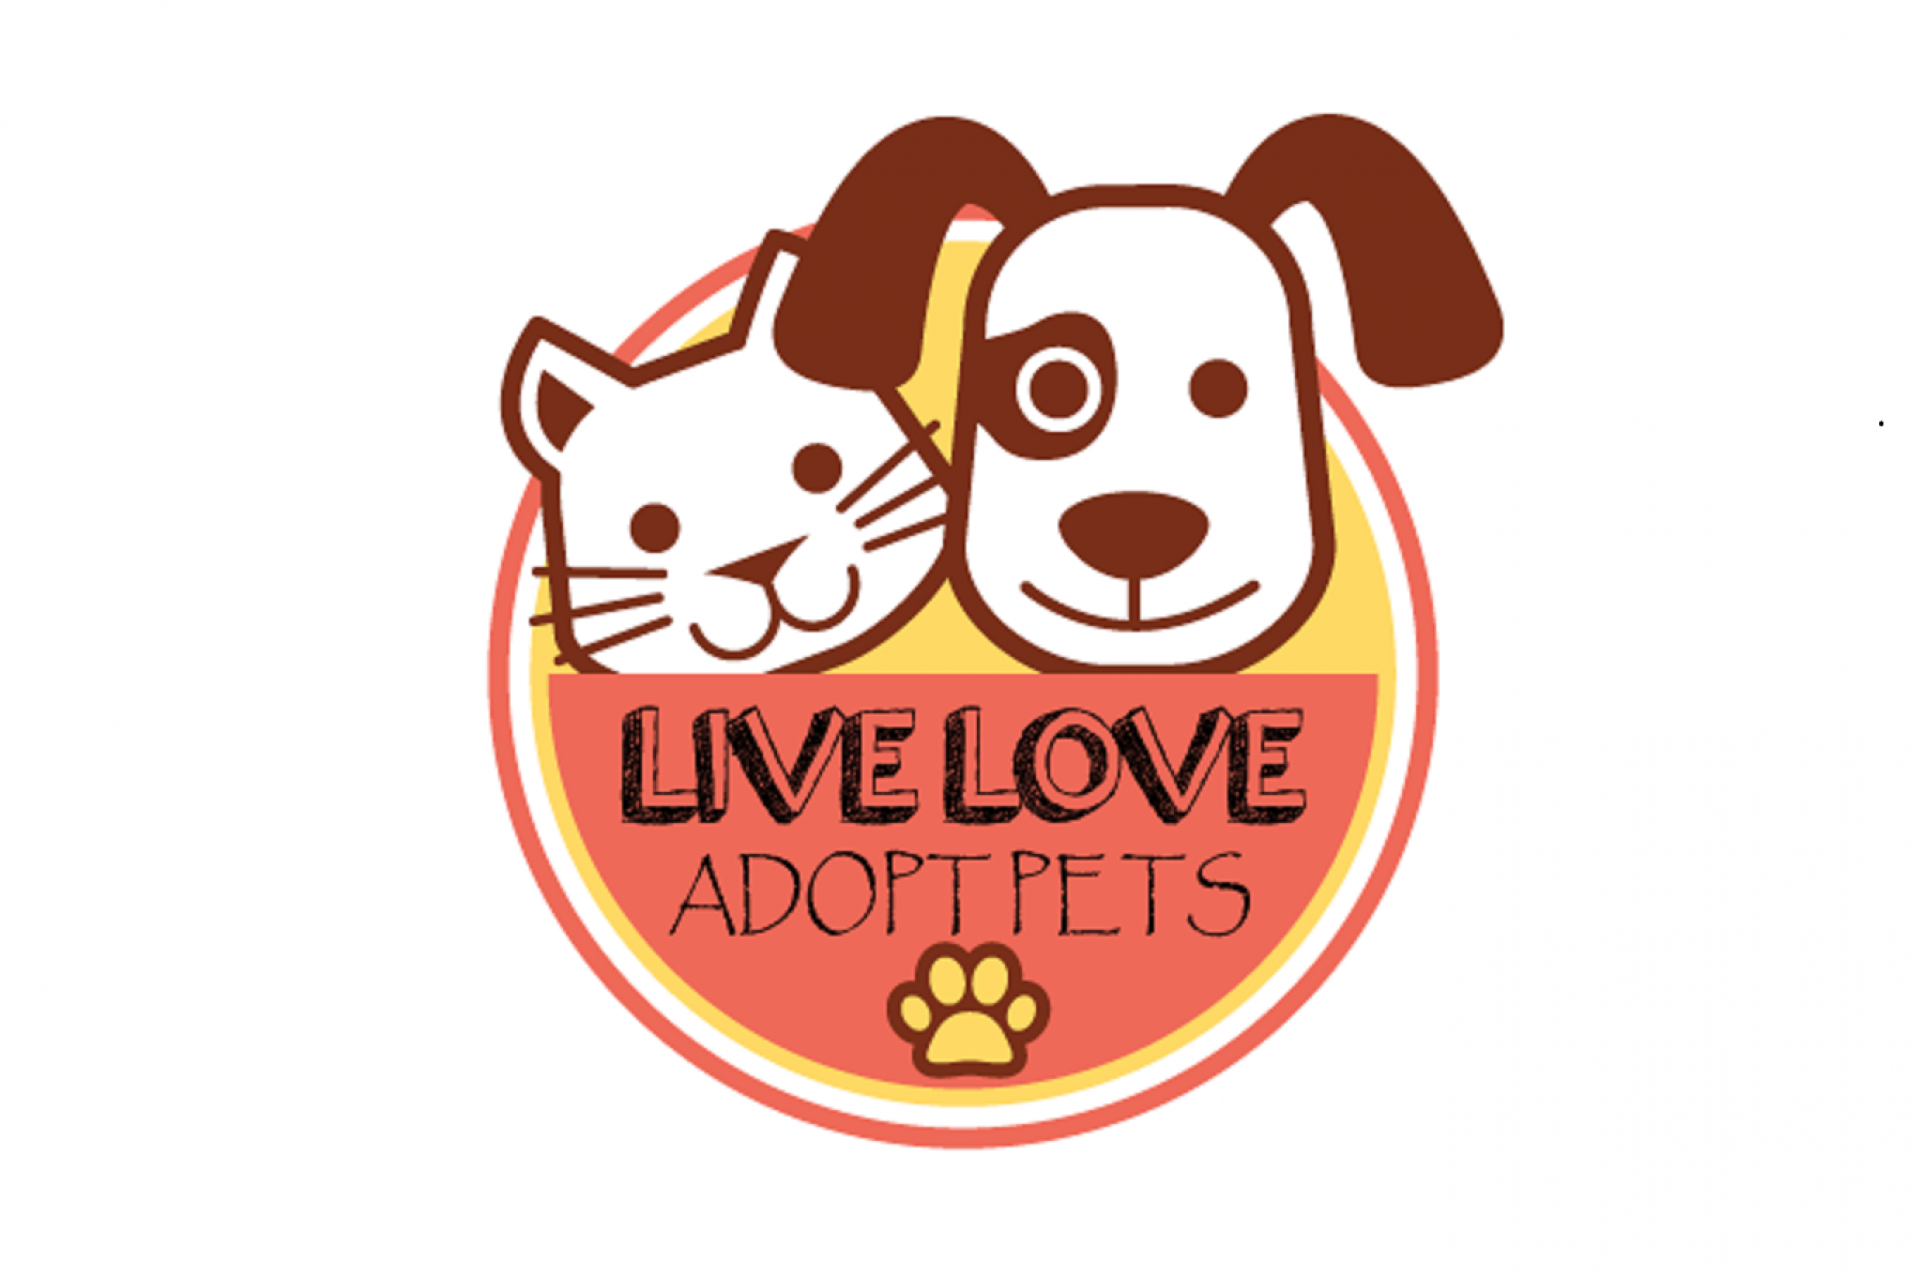 Live, Love, Adopt Pets